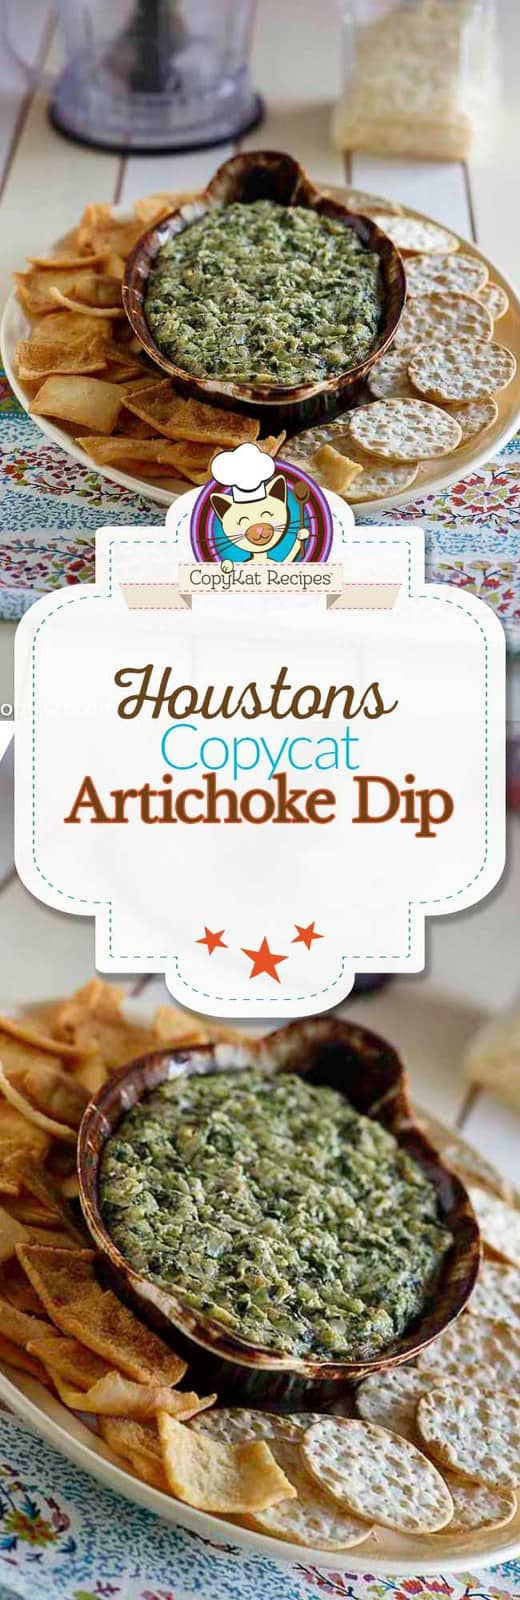 You can make Houstons Artichoke Dip can be easy to make with this copycat recipe.